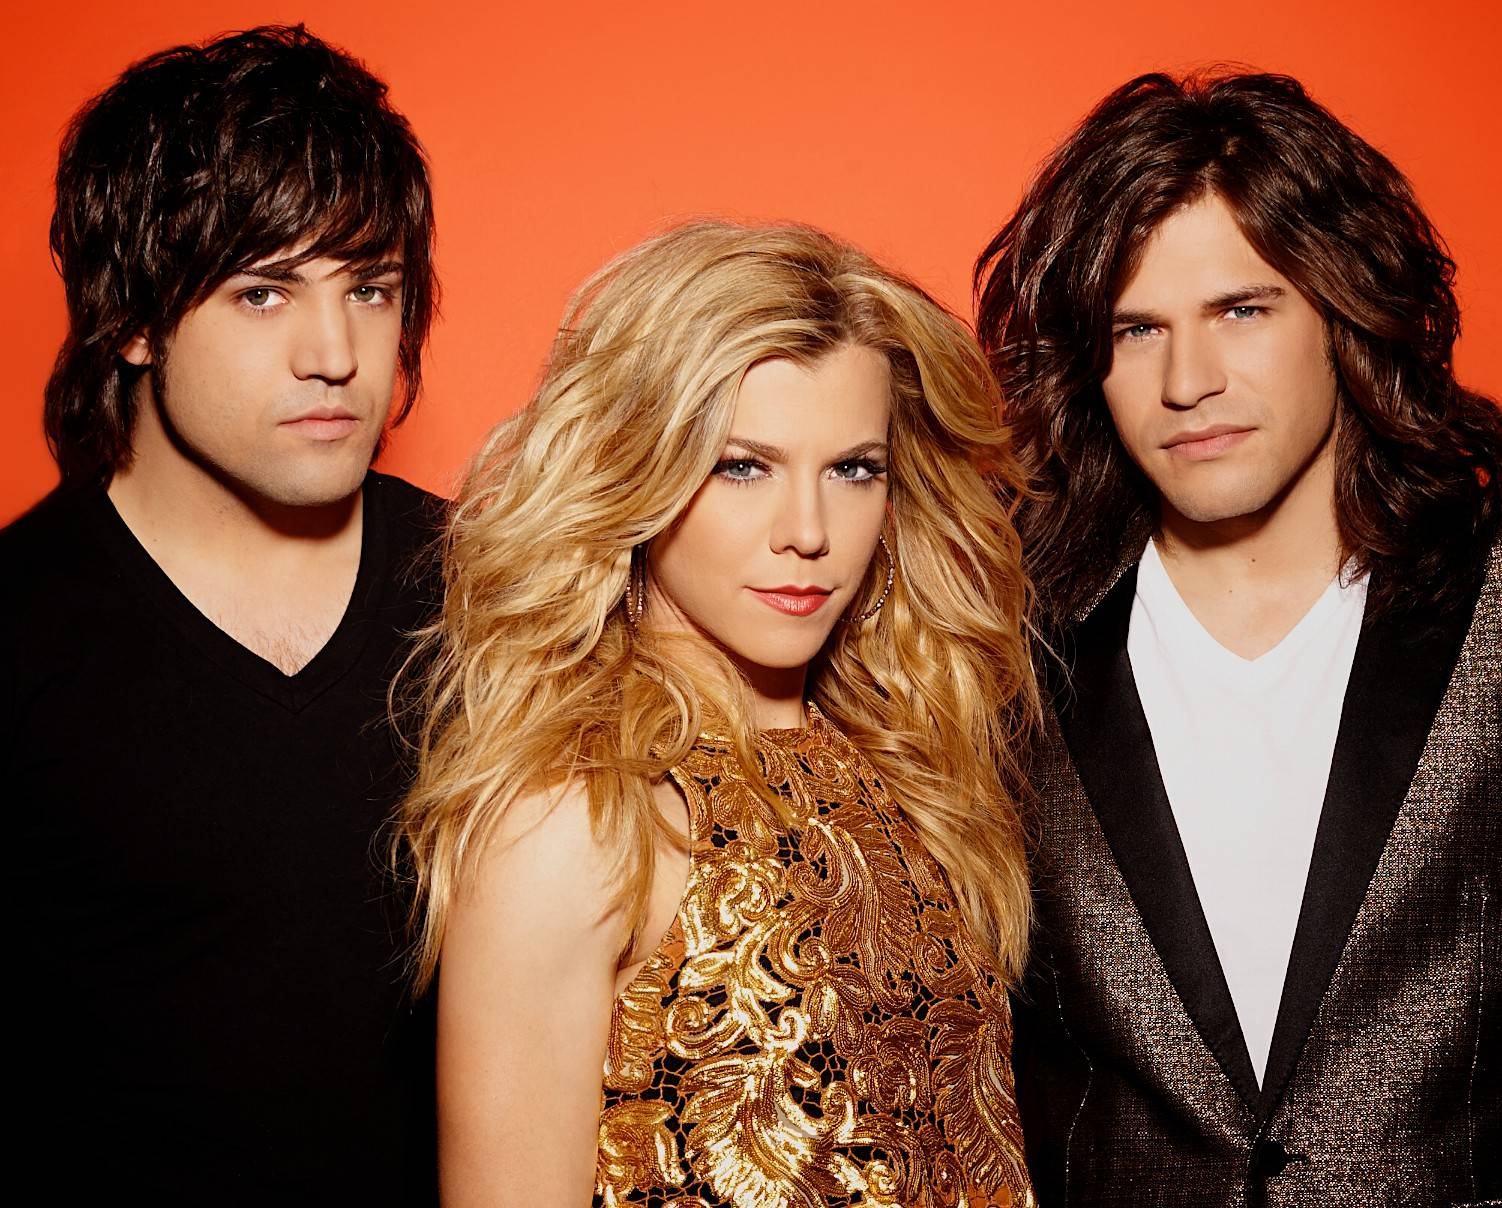 Naperville's Ribfest bringing The Band Perry in for July 5 finale